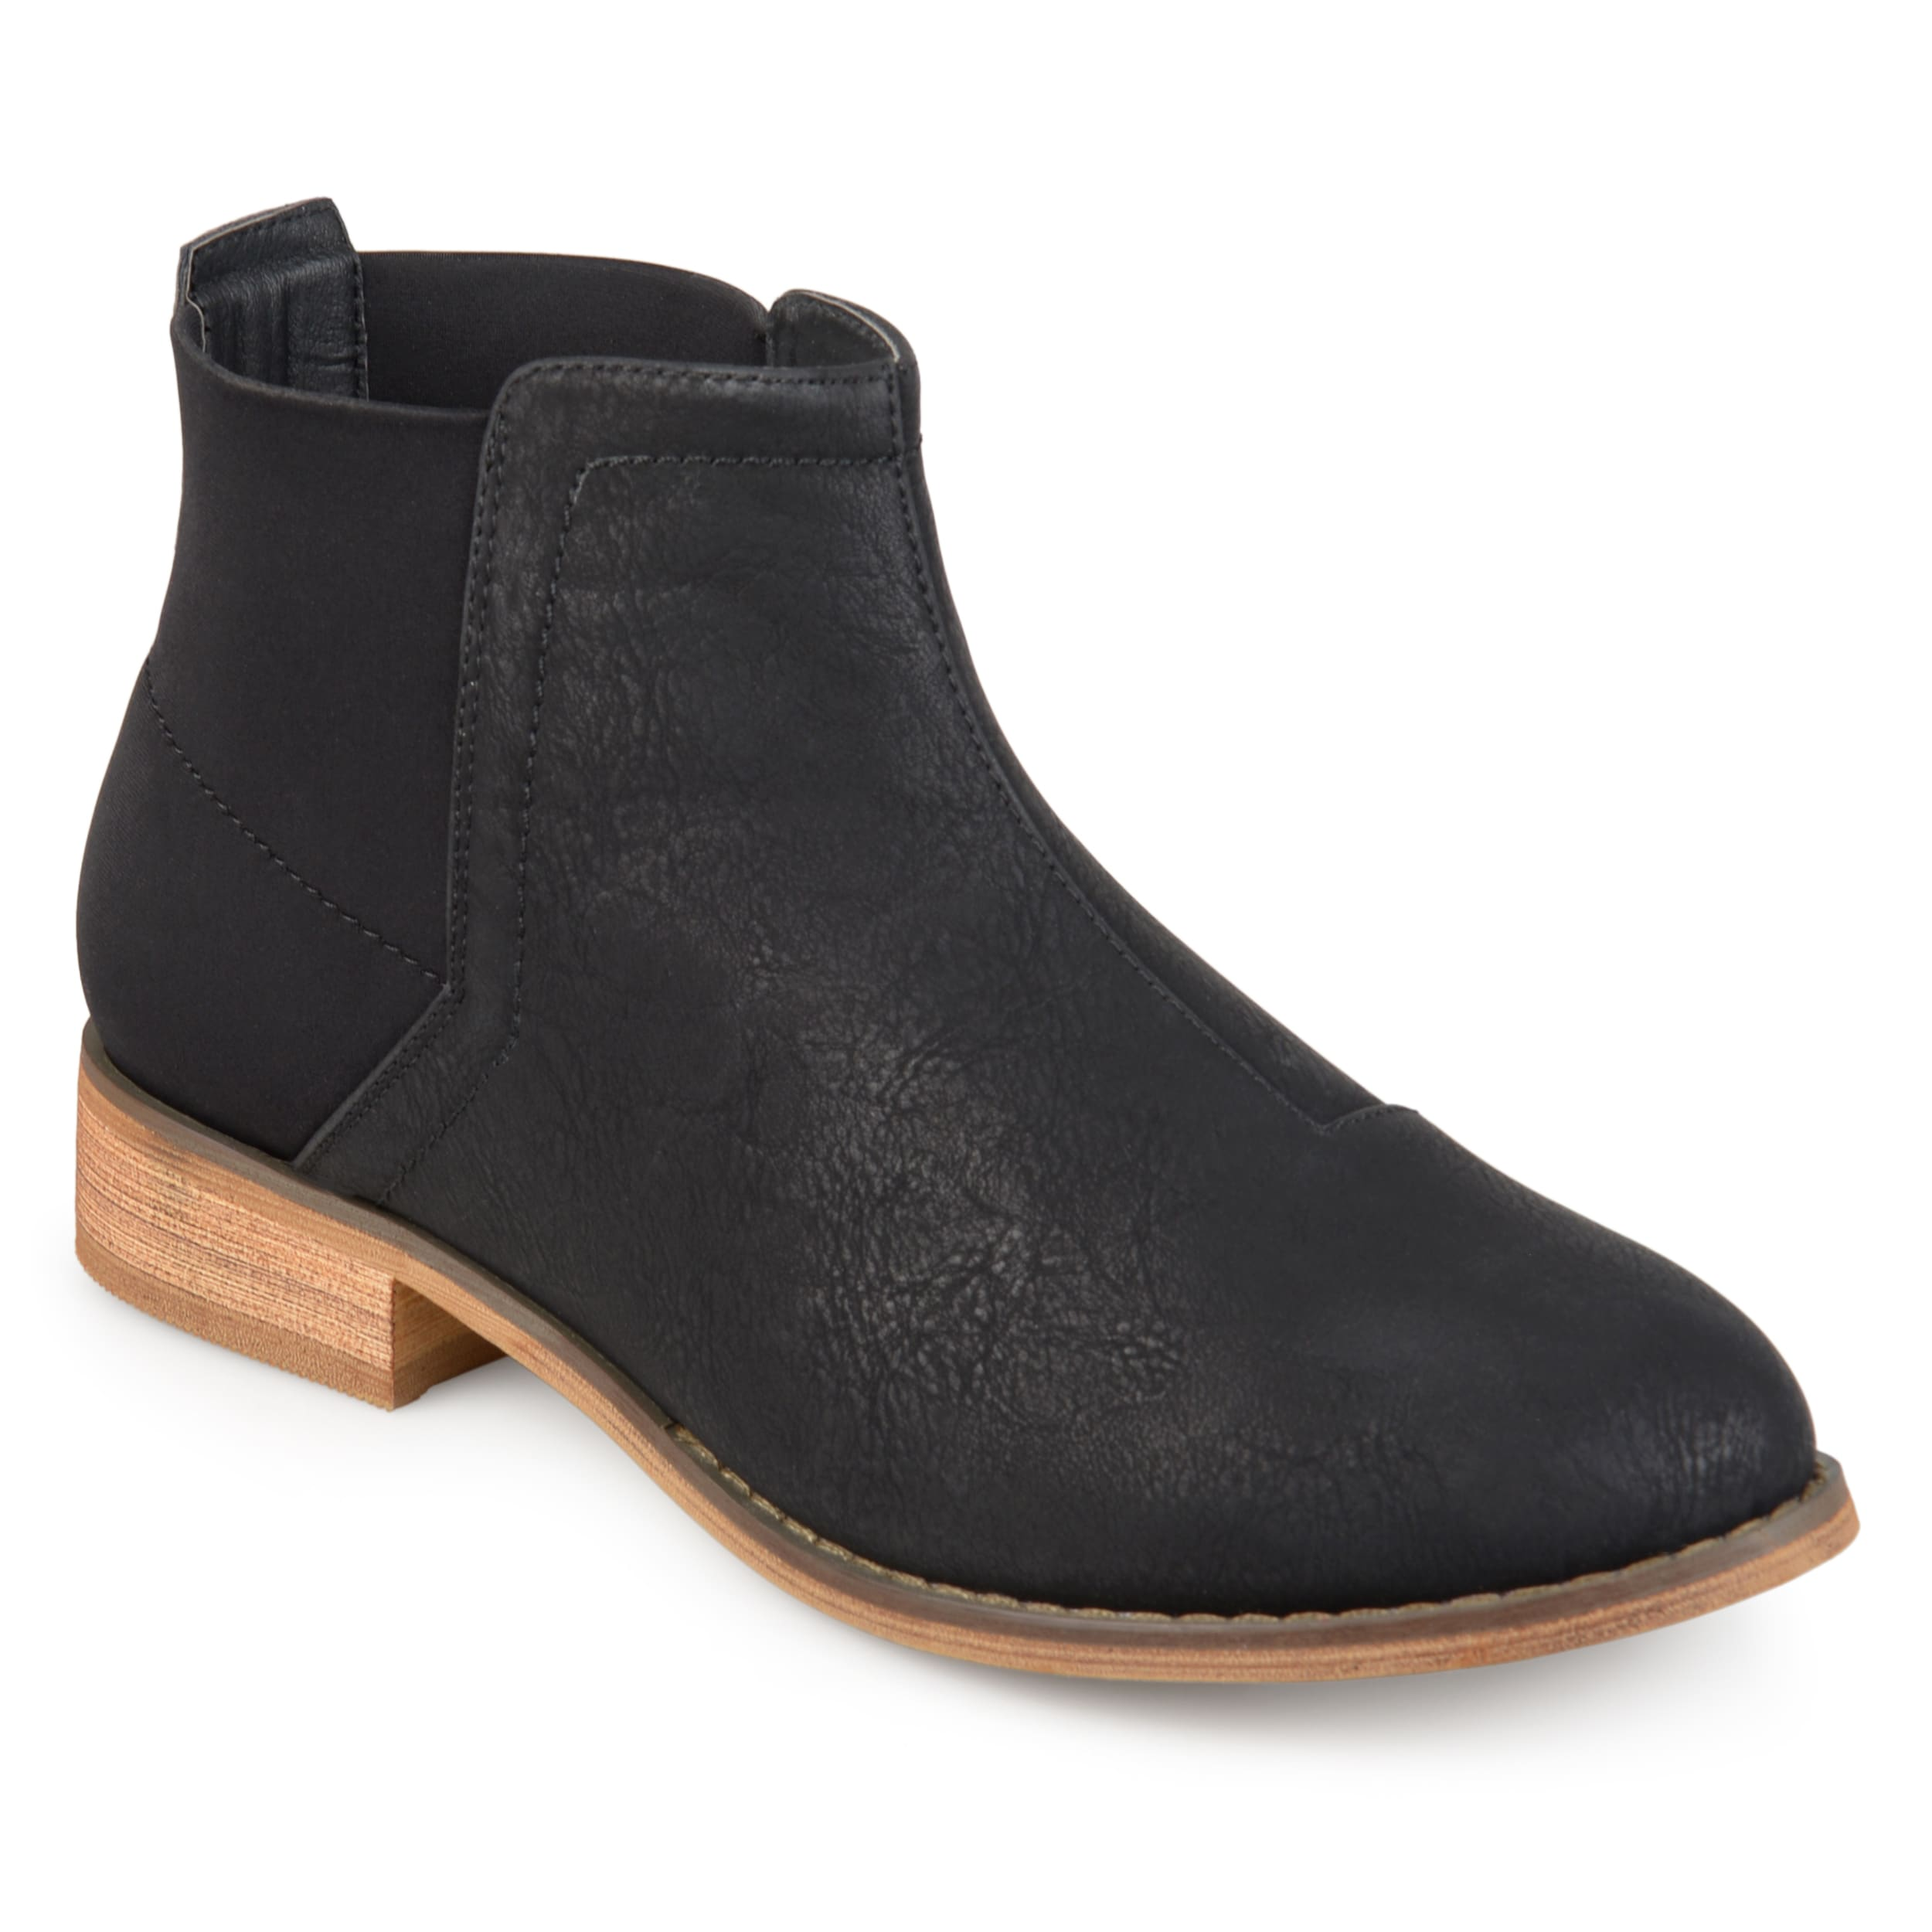 Journee Collection Roe Women's ... Ankle Boots 2014 newest for sale sale sast 65aZgVrp6